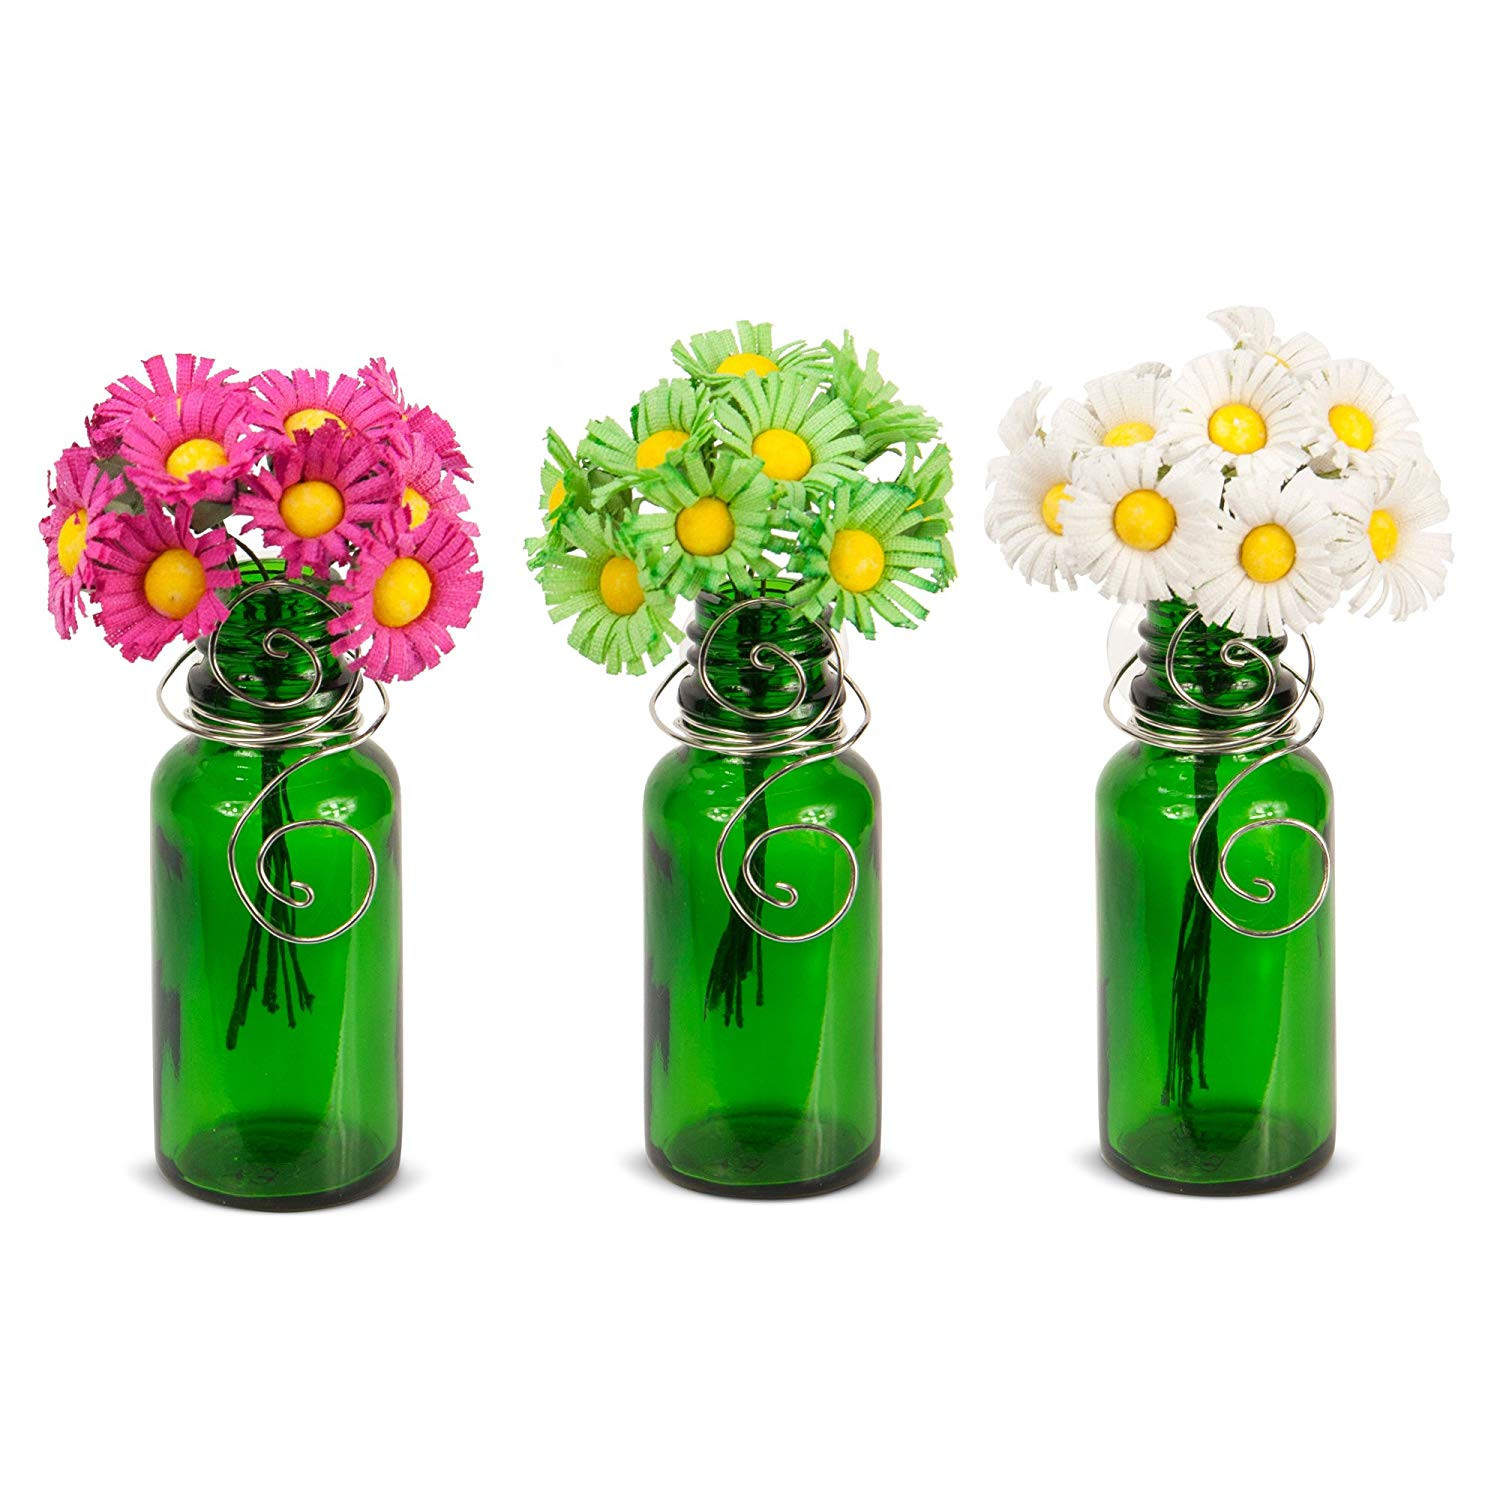 test tube flower vase of amazon com vazzini mini vase bouquet suction cup bud bottle intended for amazon com vazzini mini vase bouquet suction cup bud bottle holder with flowers decorative for window mirrors tile wedding party favor get well